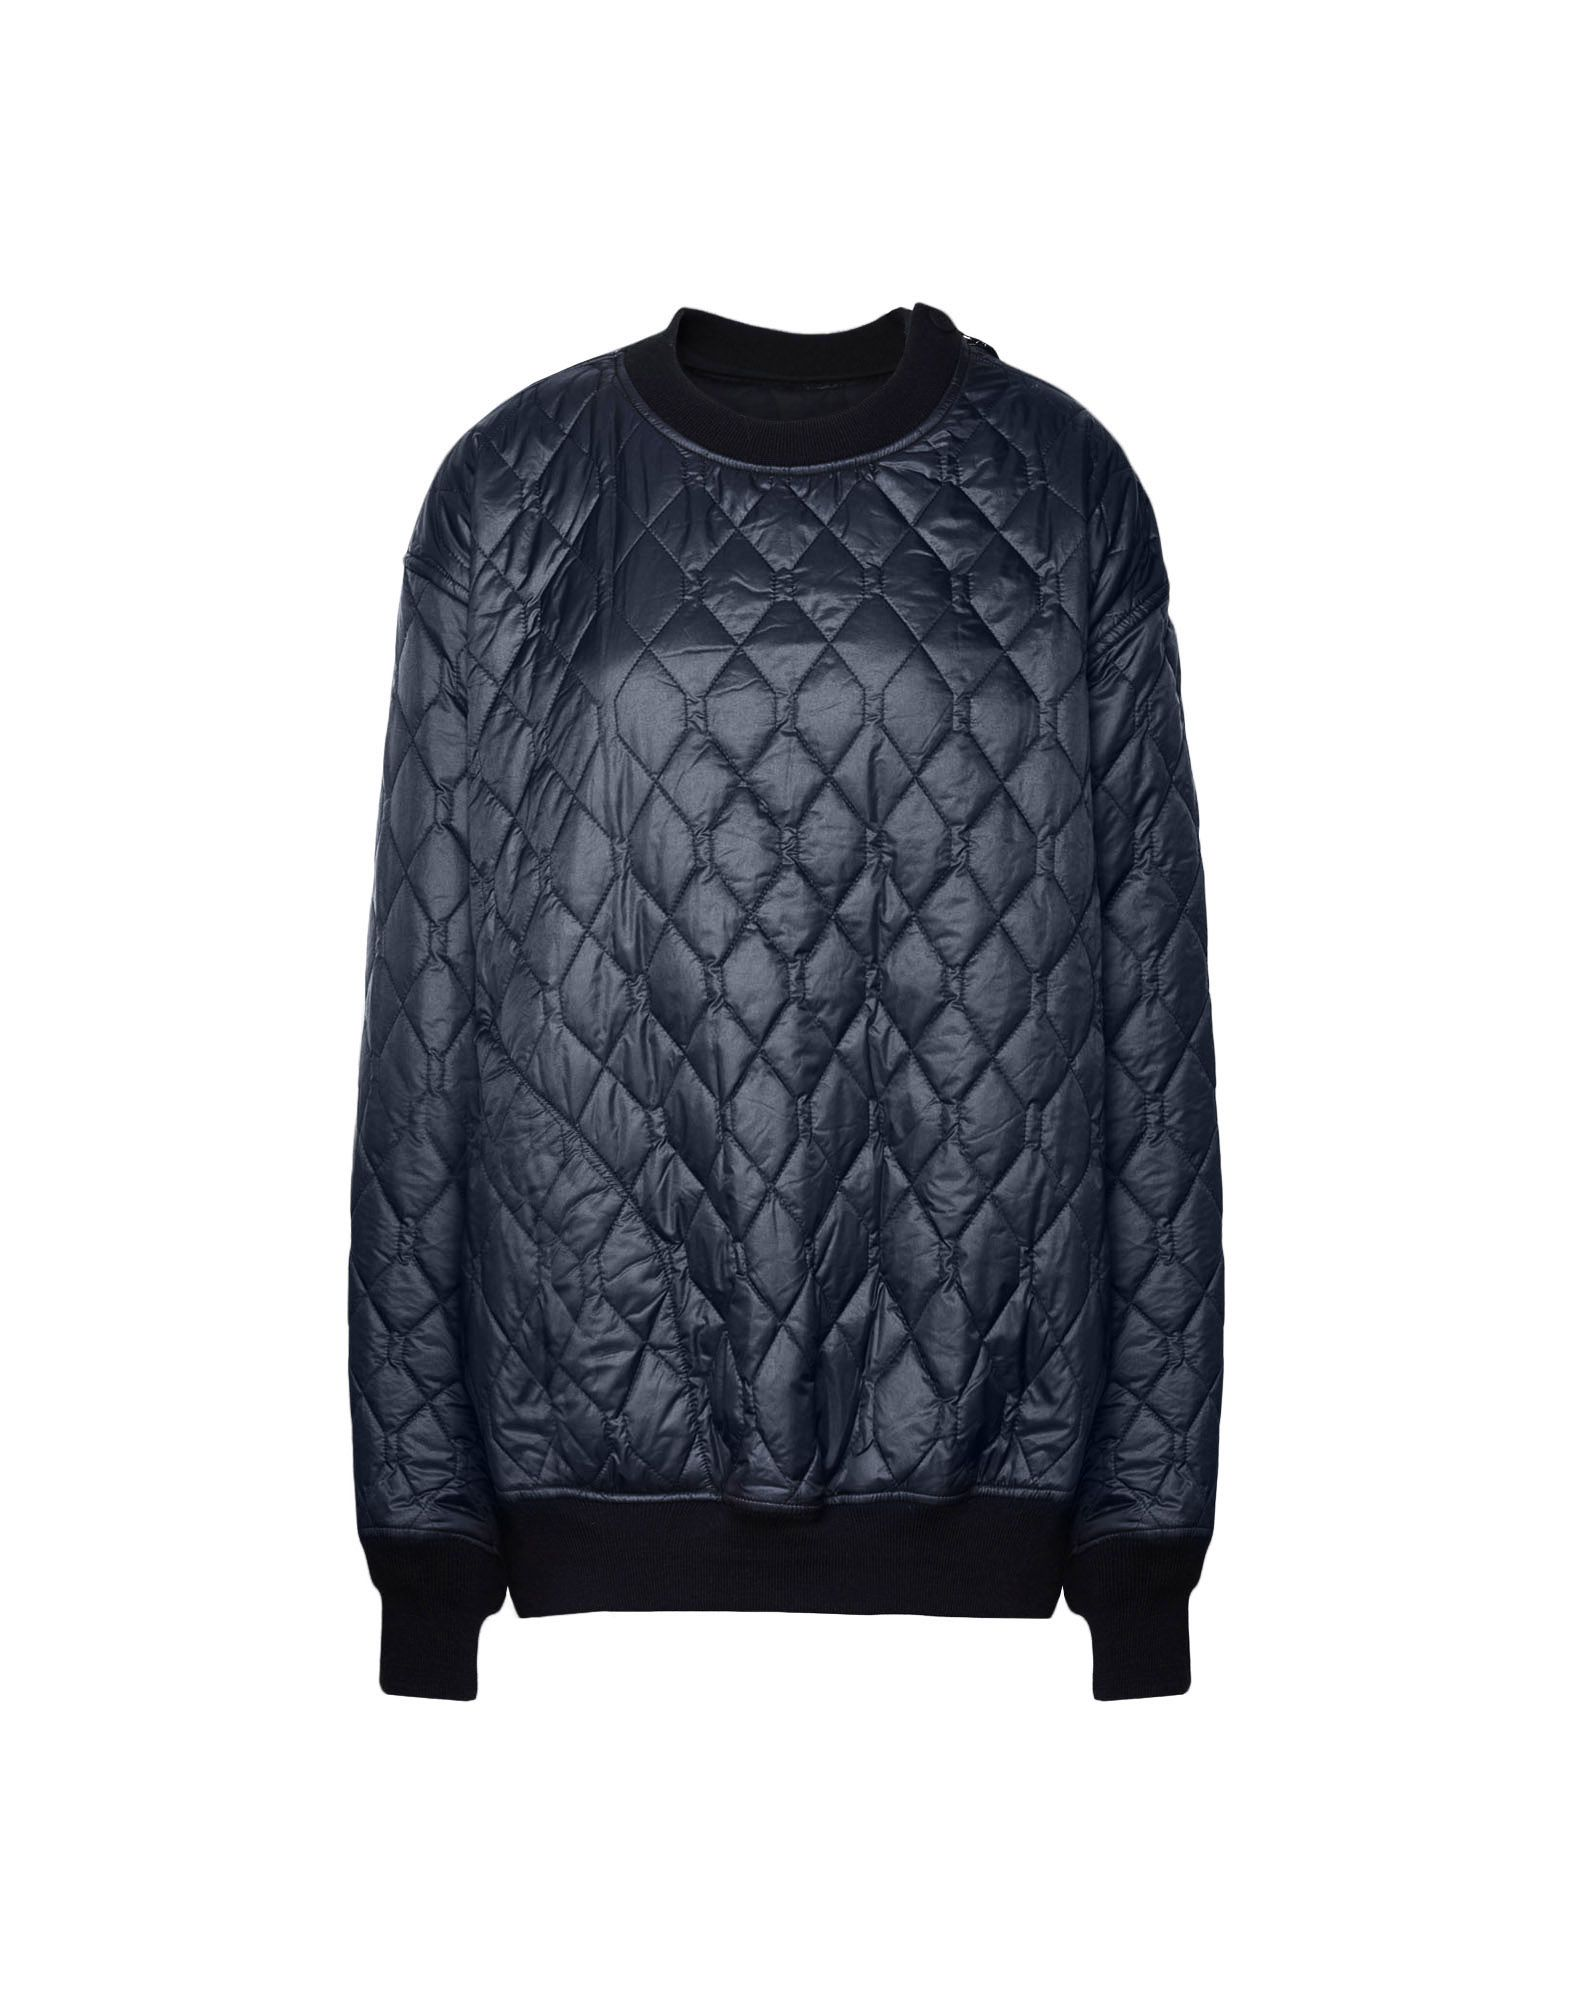 Y-3 Y-3 Quilted Sweater スウェット レディース f